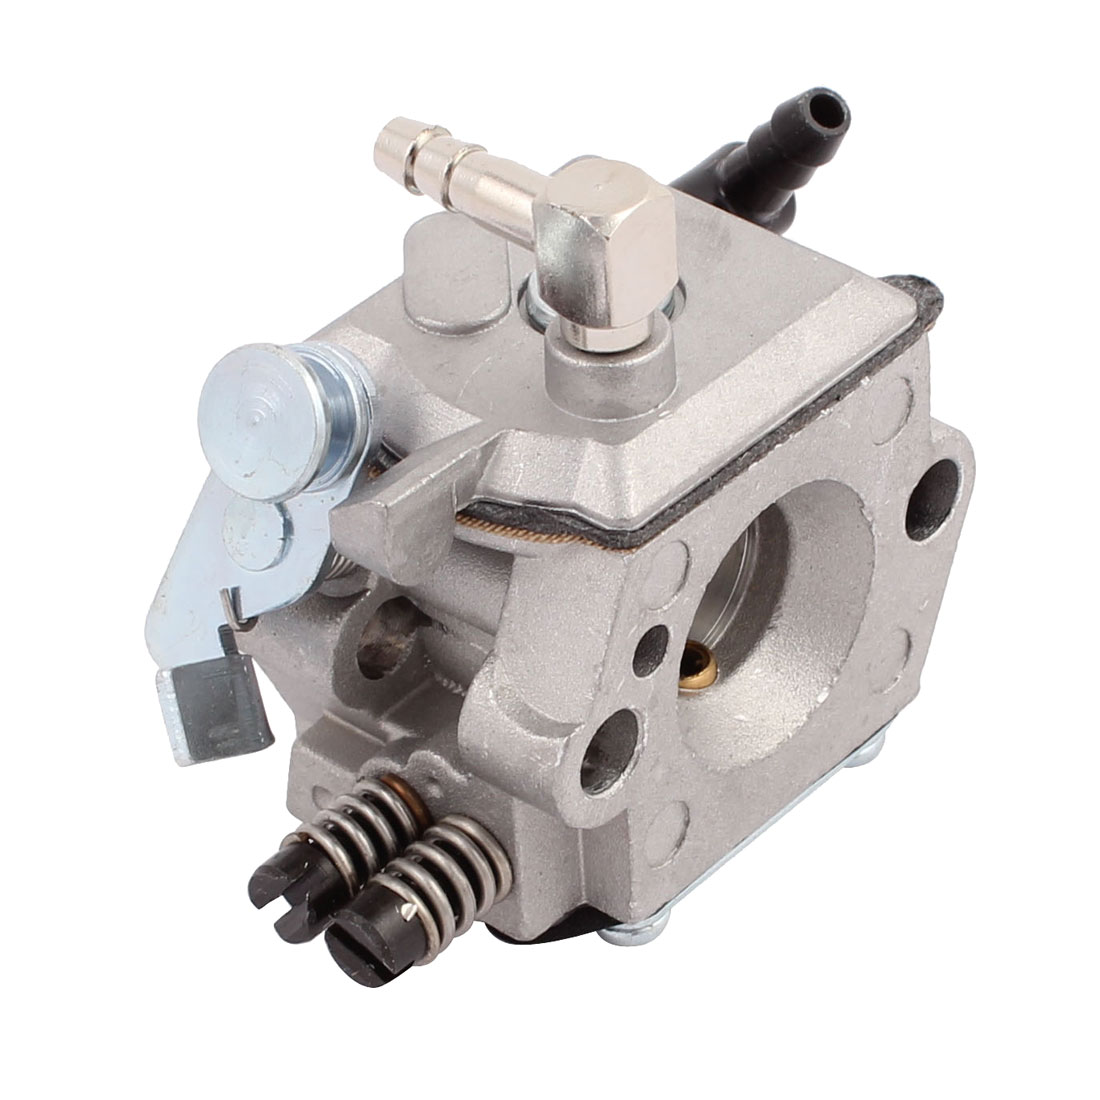 New WT-16B Carburetor for Stihl 028 028/AV MS028 Chainsaw Parts Lawn Mower